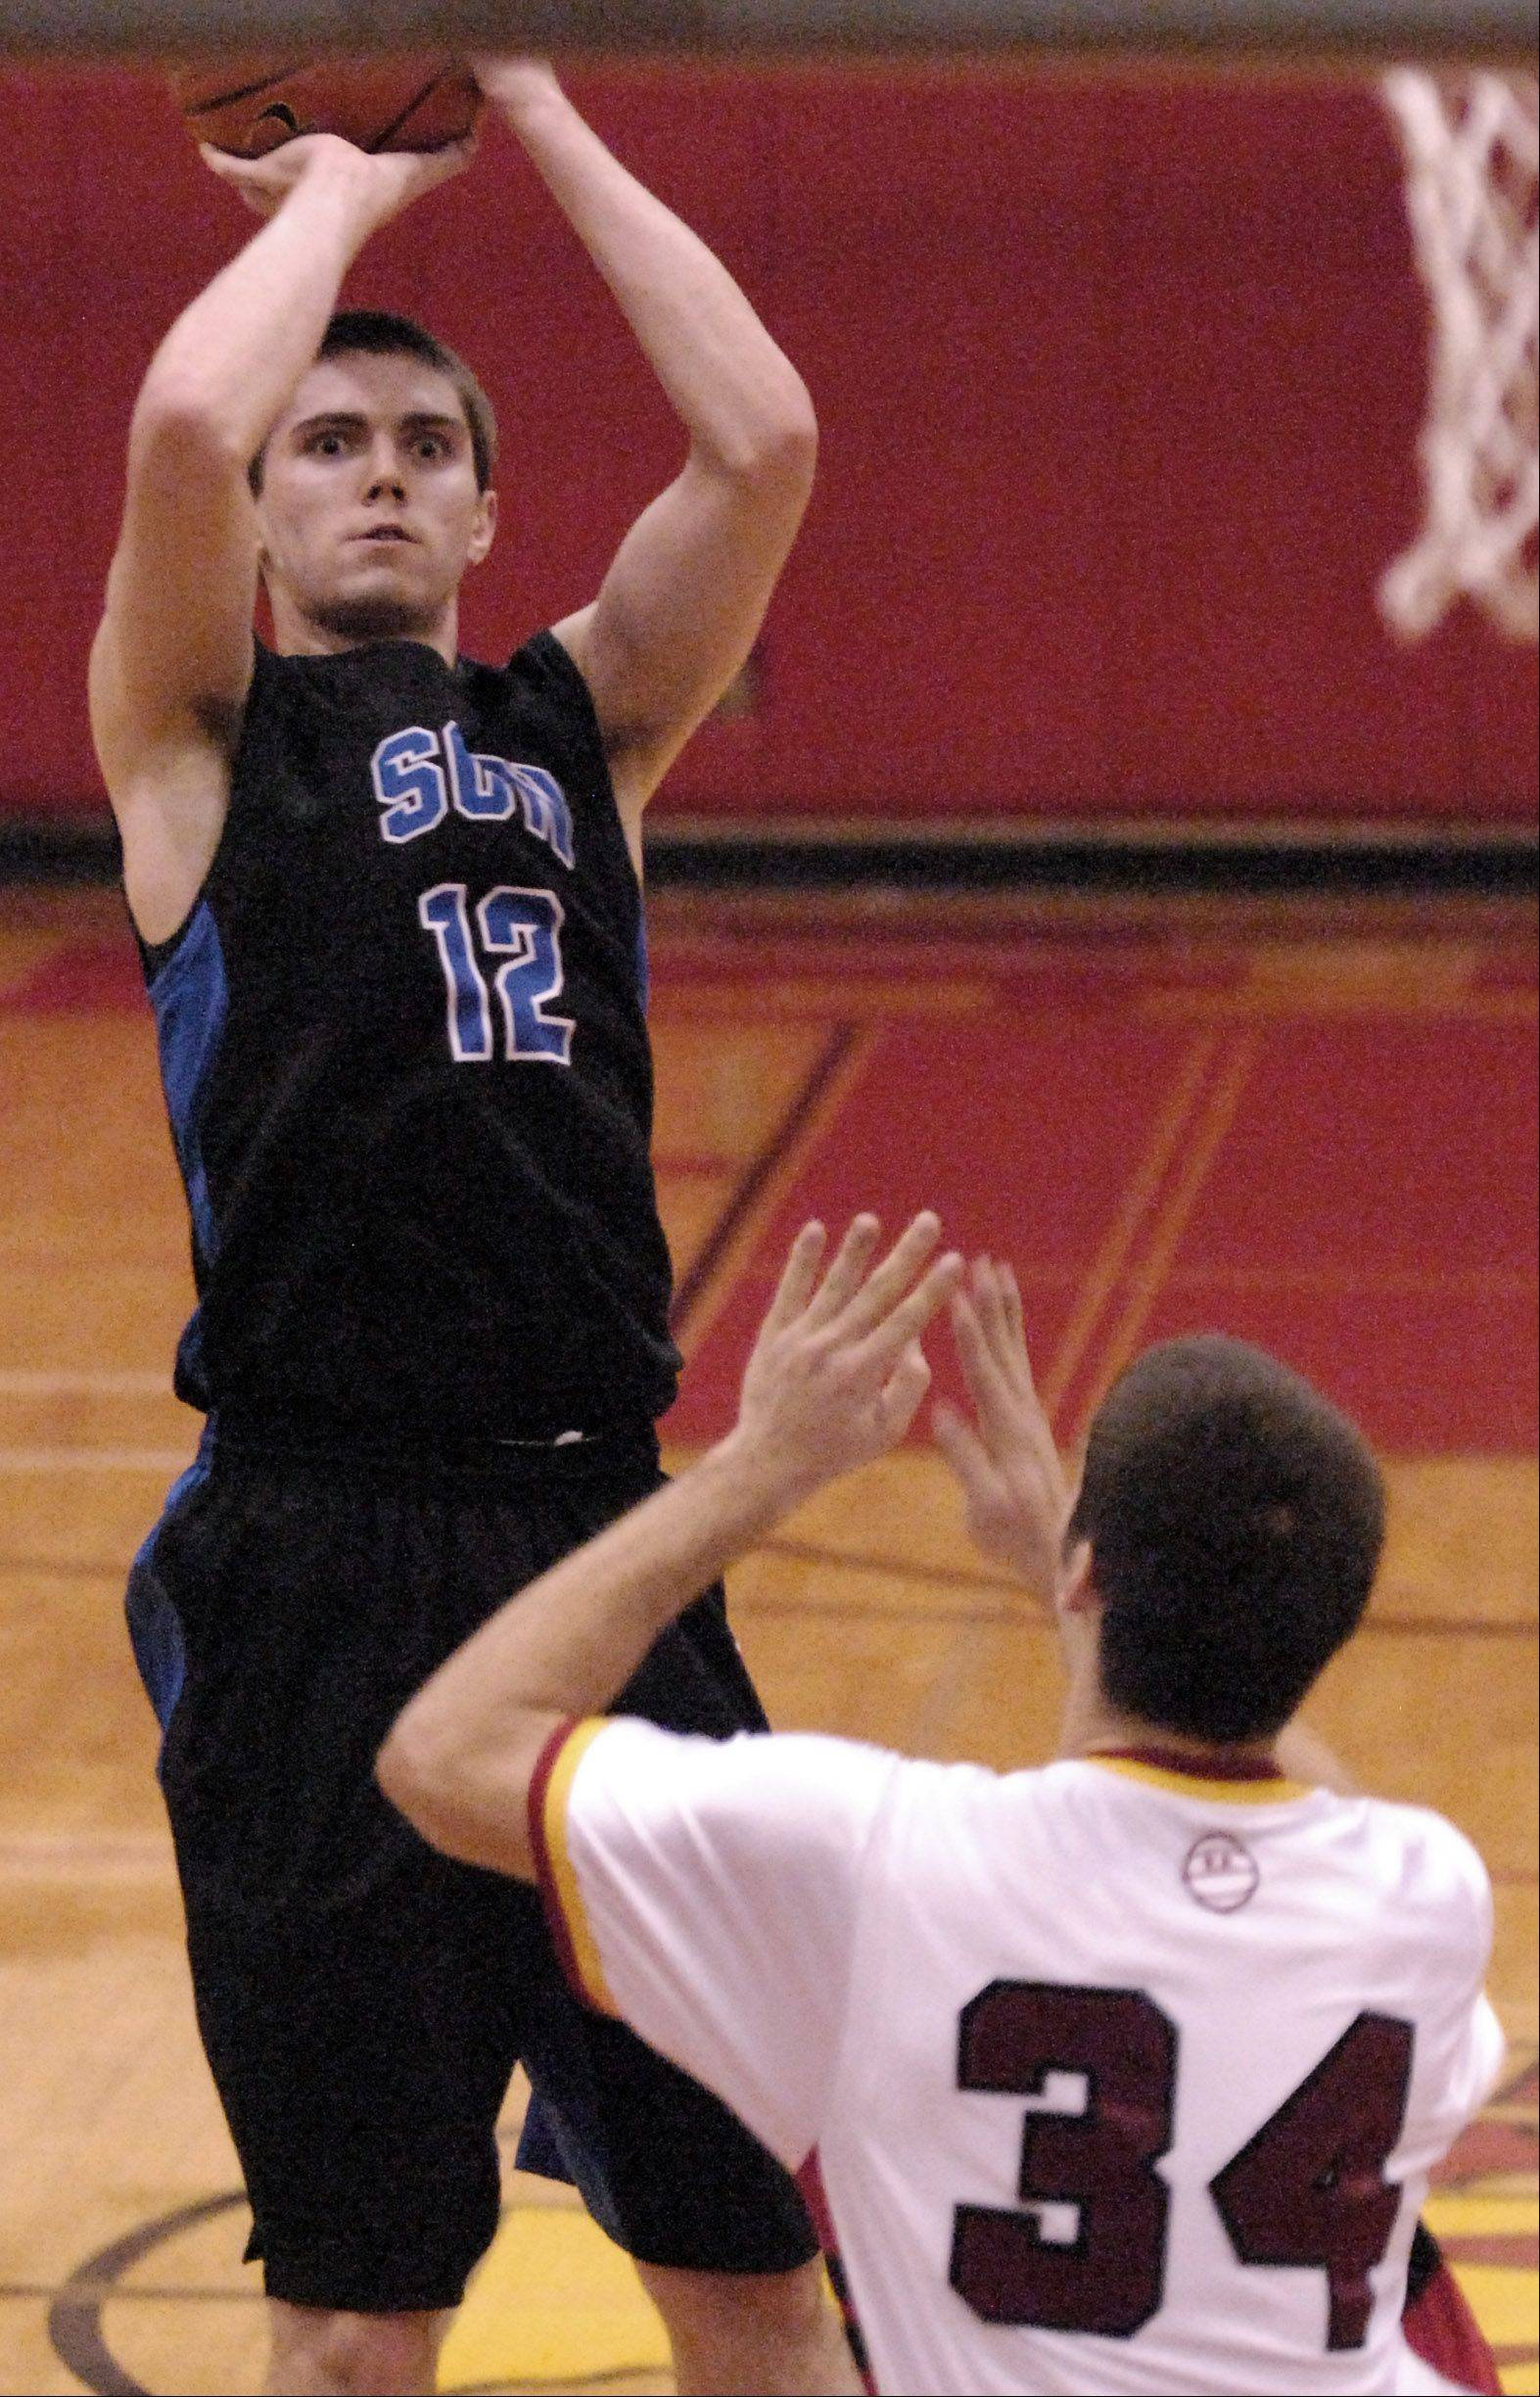 St. Charles North's Quinten Payne shoots and scores from the outside against Batavia during Thursday's game at Batavia.